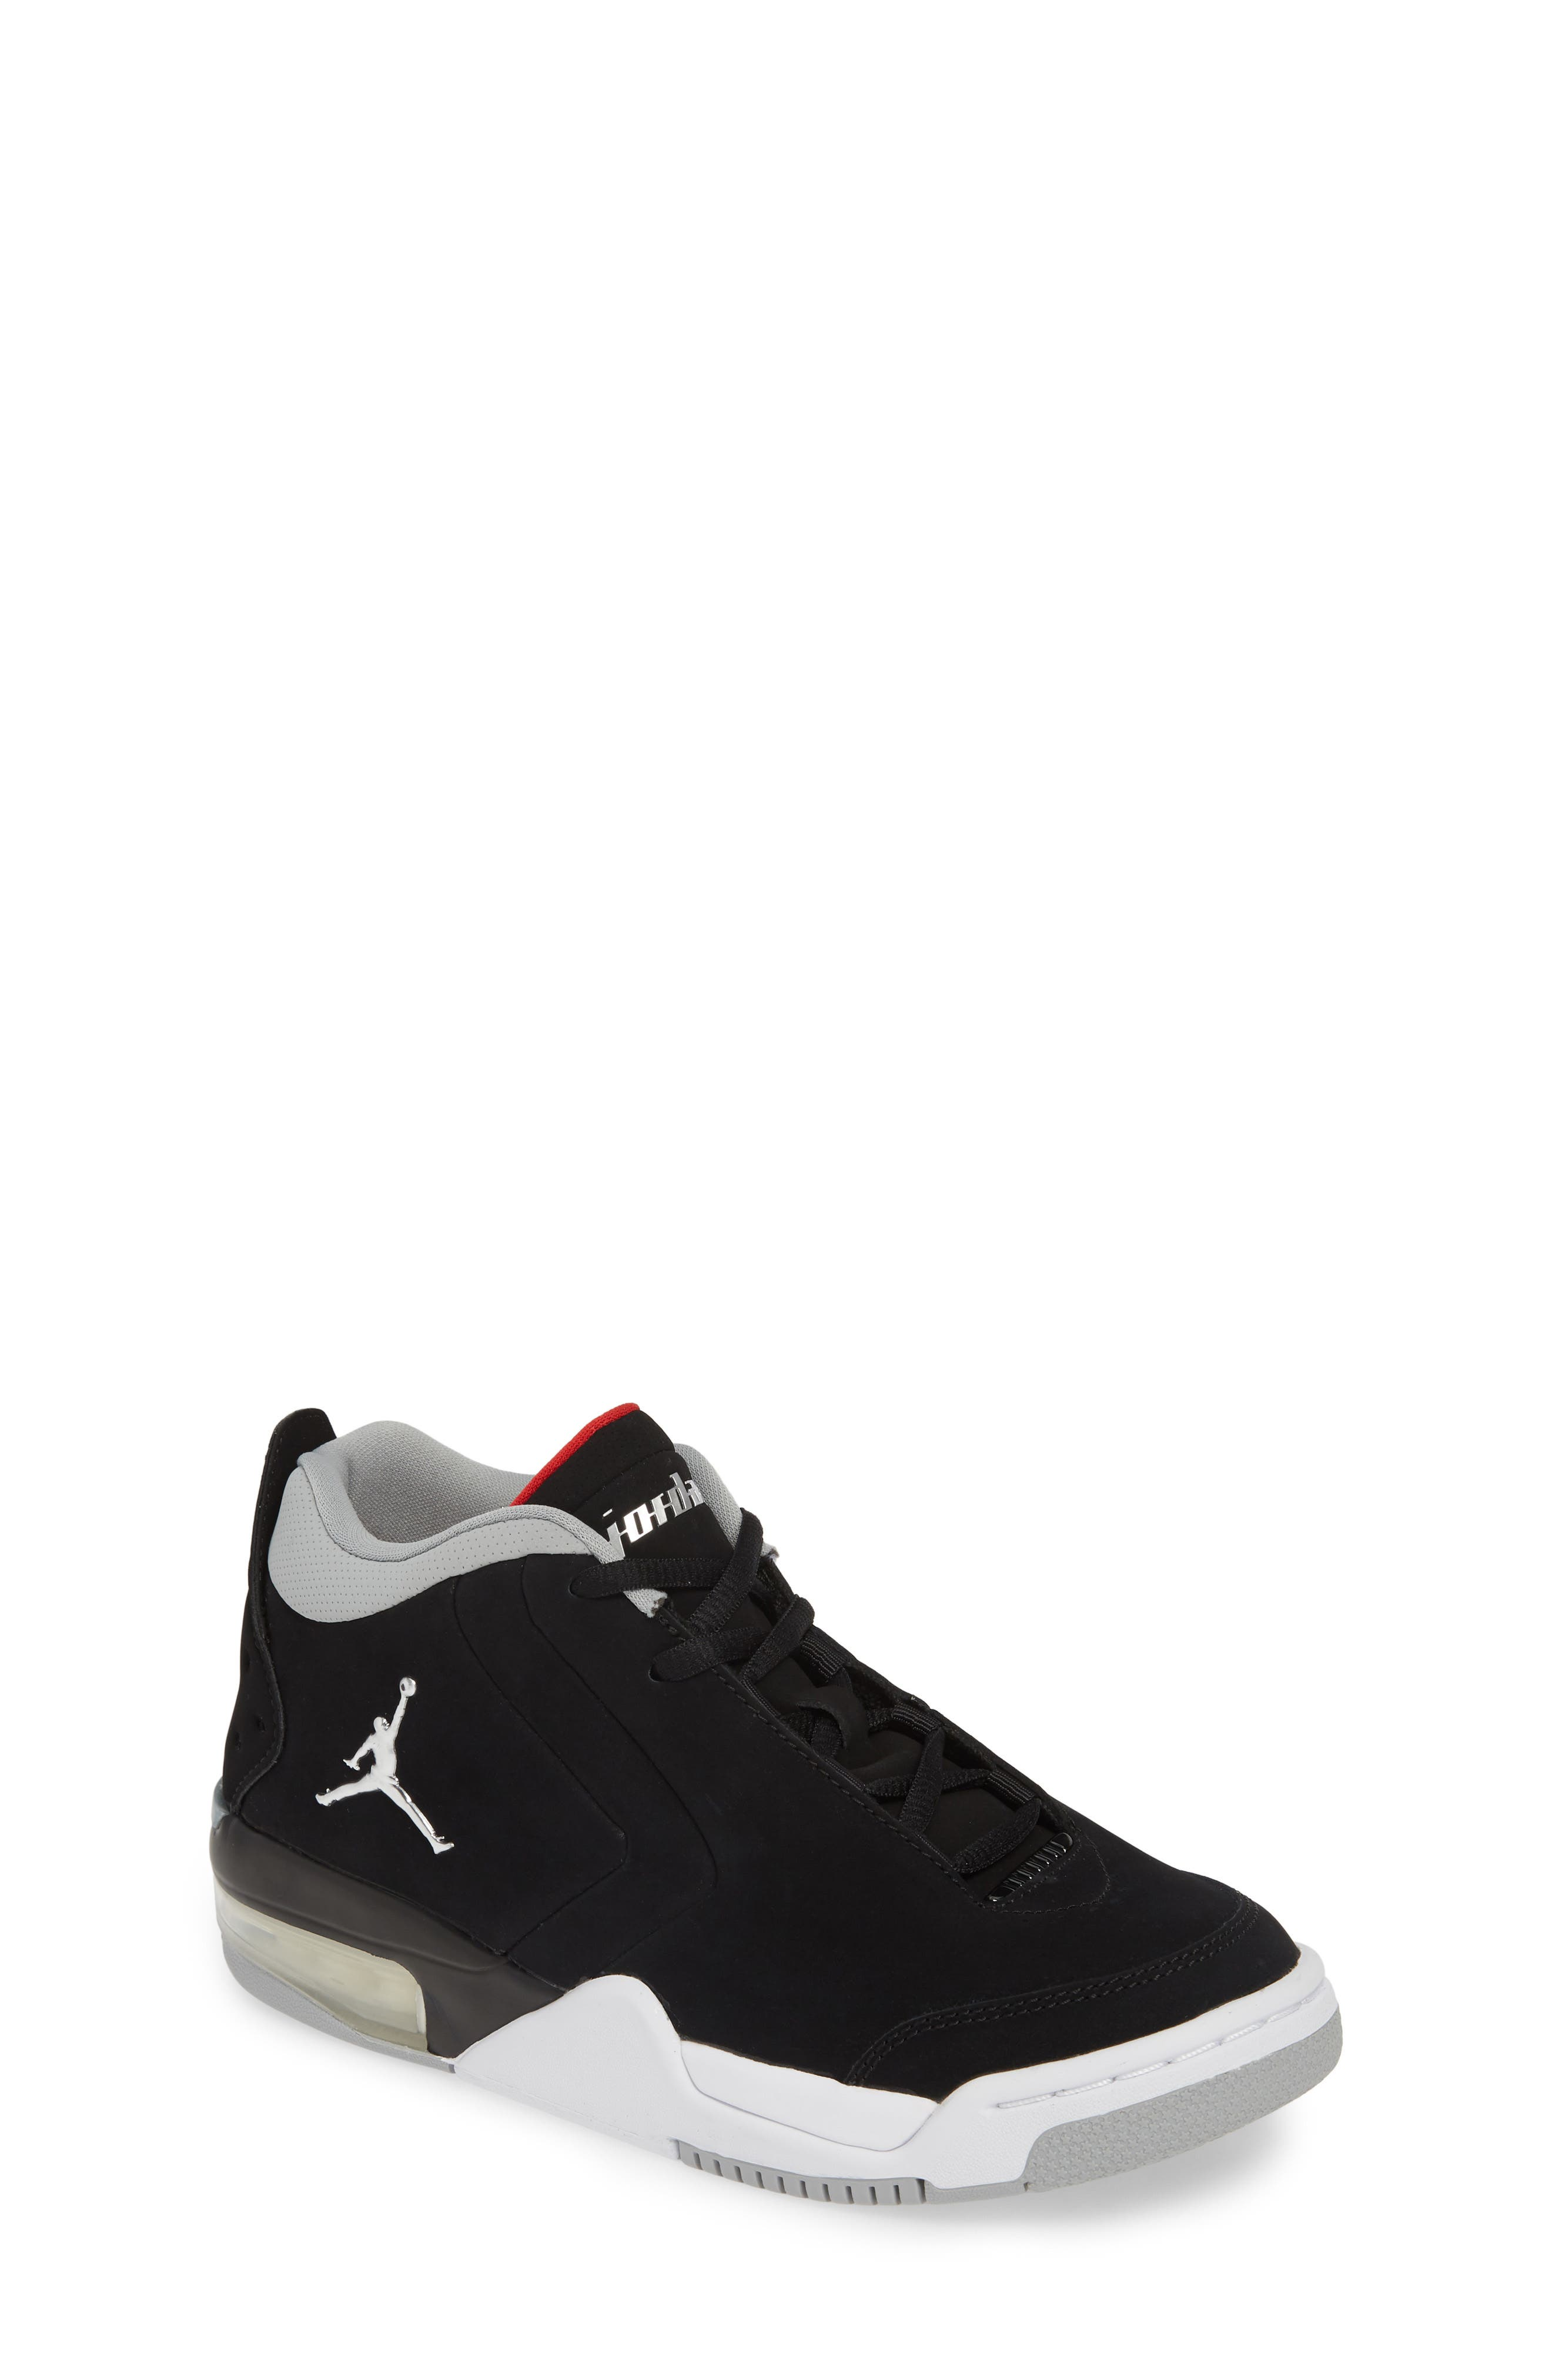 Big Fund Mid Top Basketball Sneaker, Main, color, BLACK/ METALLIC SILVER-WHITE